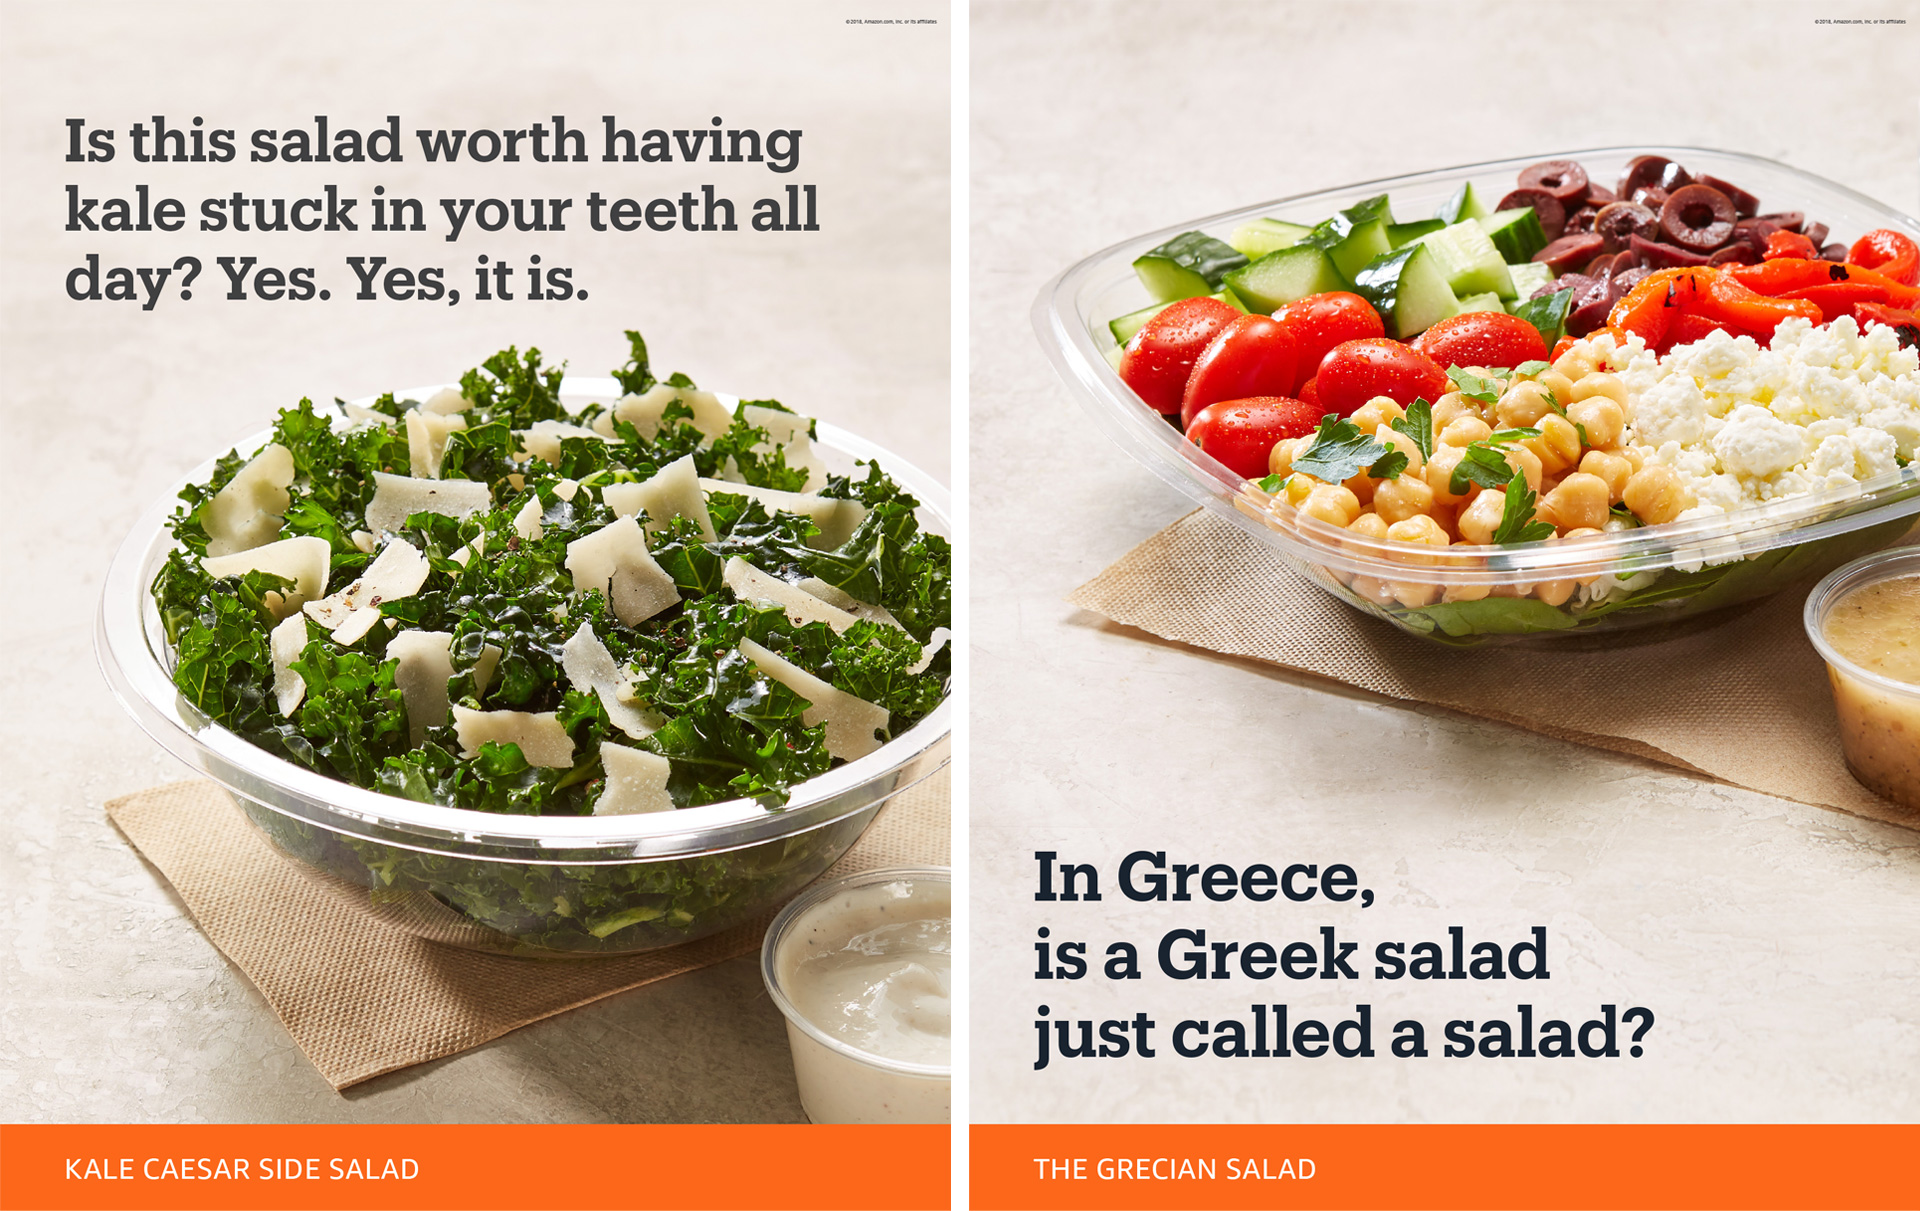 go_campaigns_2019_featured_salads